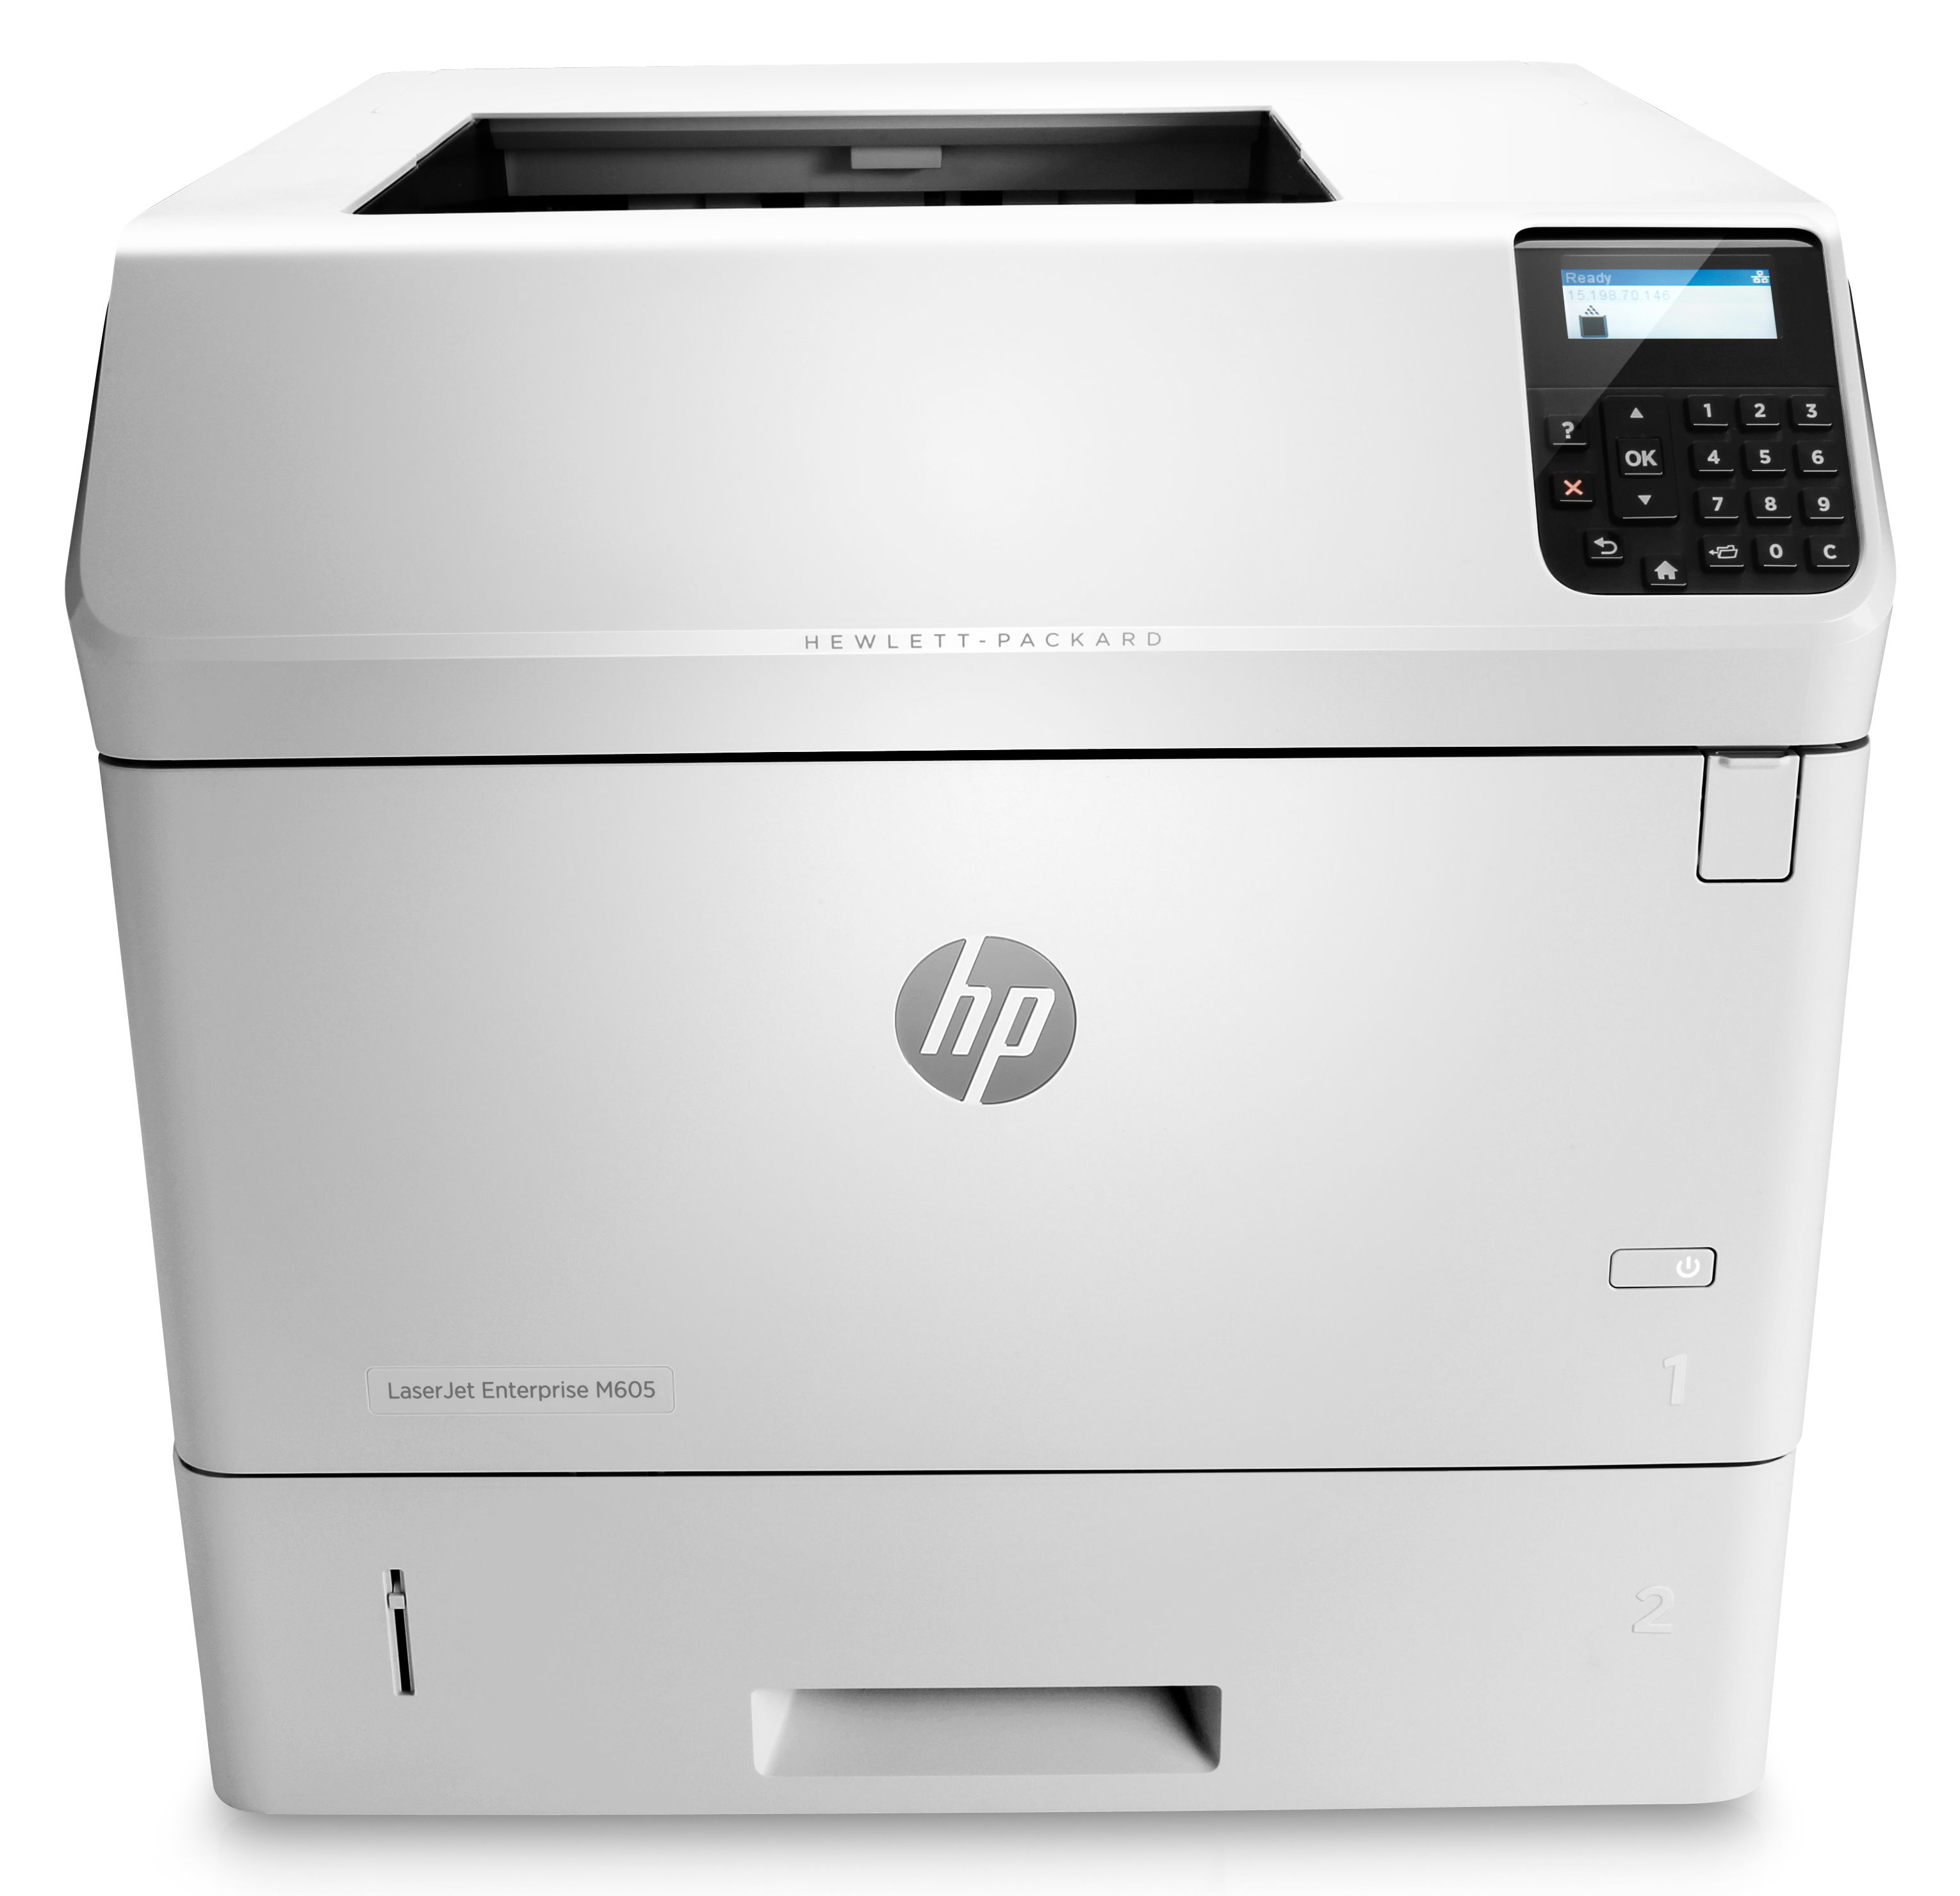 HP LaserJet Enterprise M605n mono printer E6B69A - Refurbished